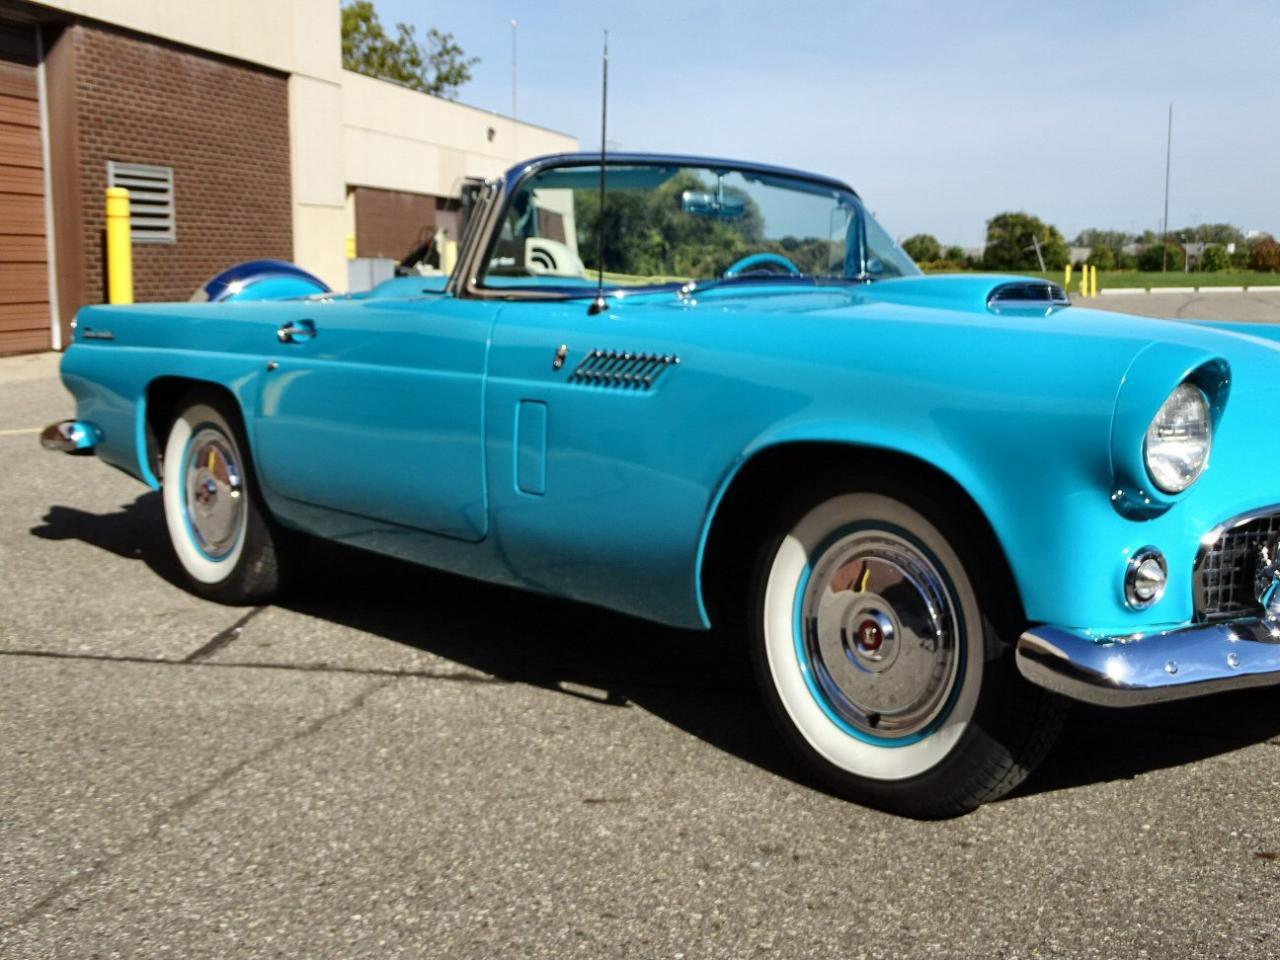 Large Picture of '56 Ford Thunderbird located in Dearborn Michigan - $34,995.00 - M6BX